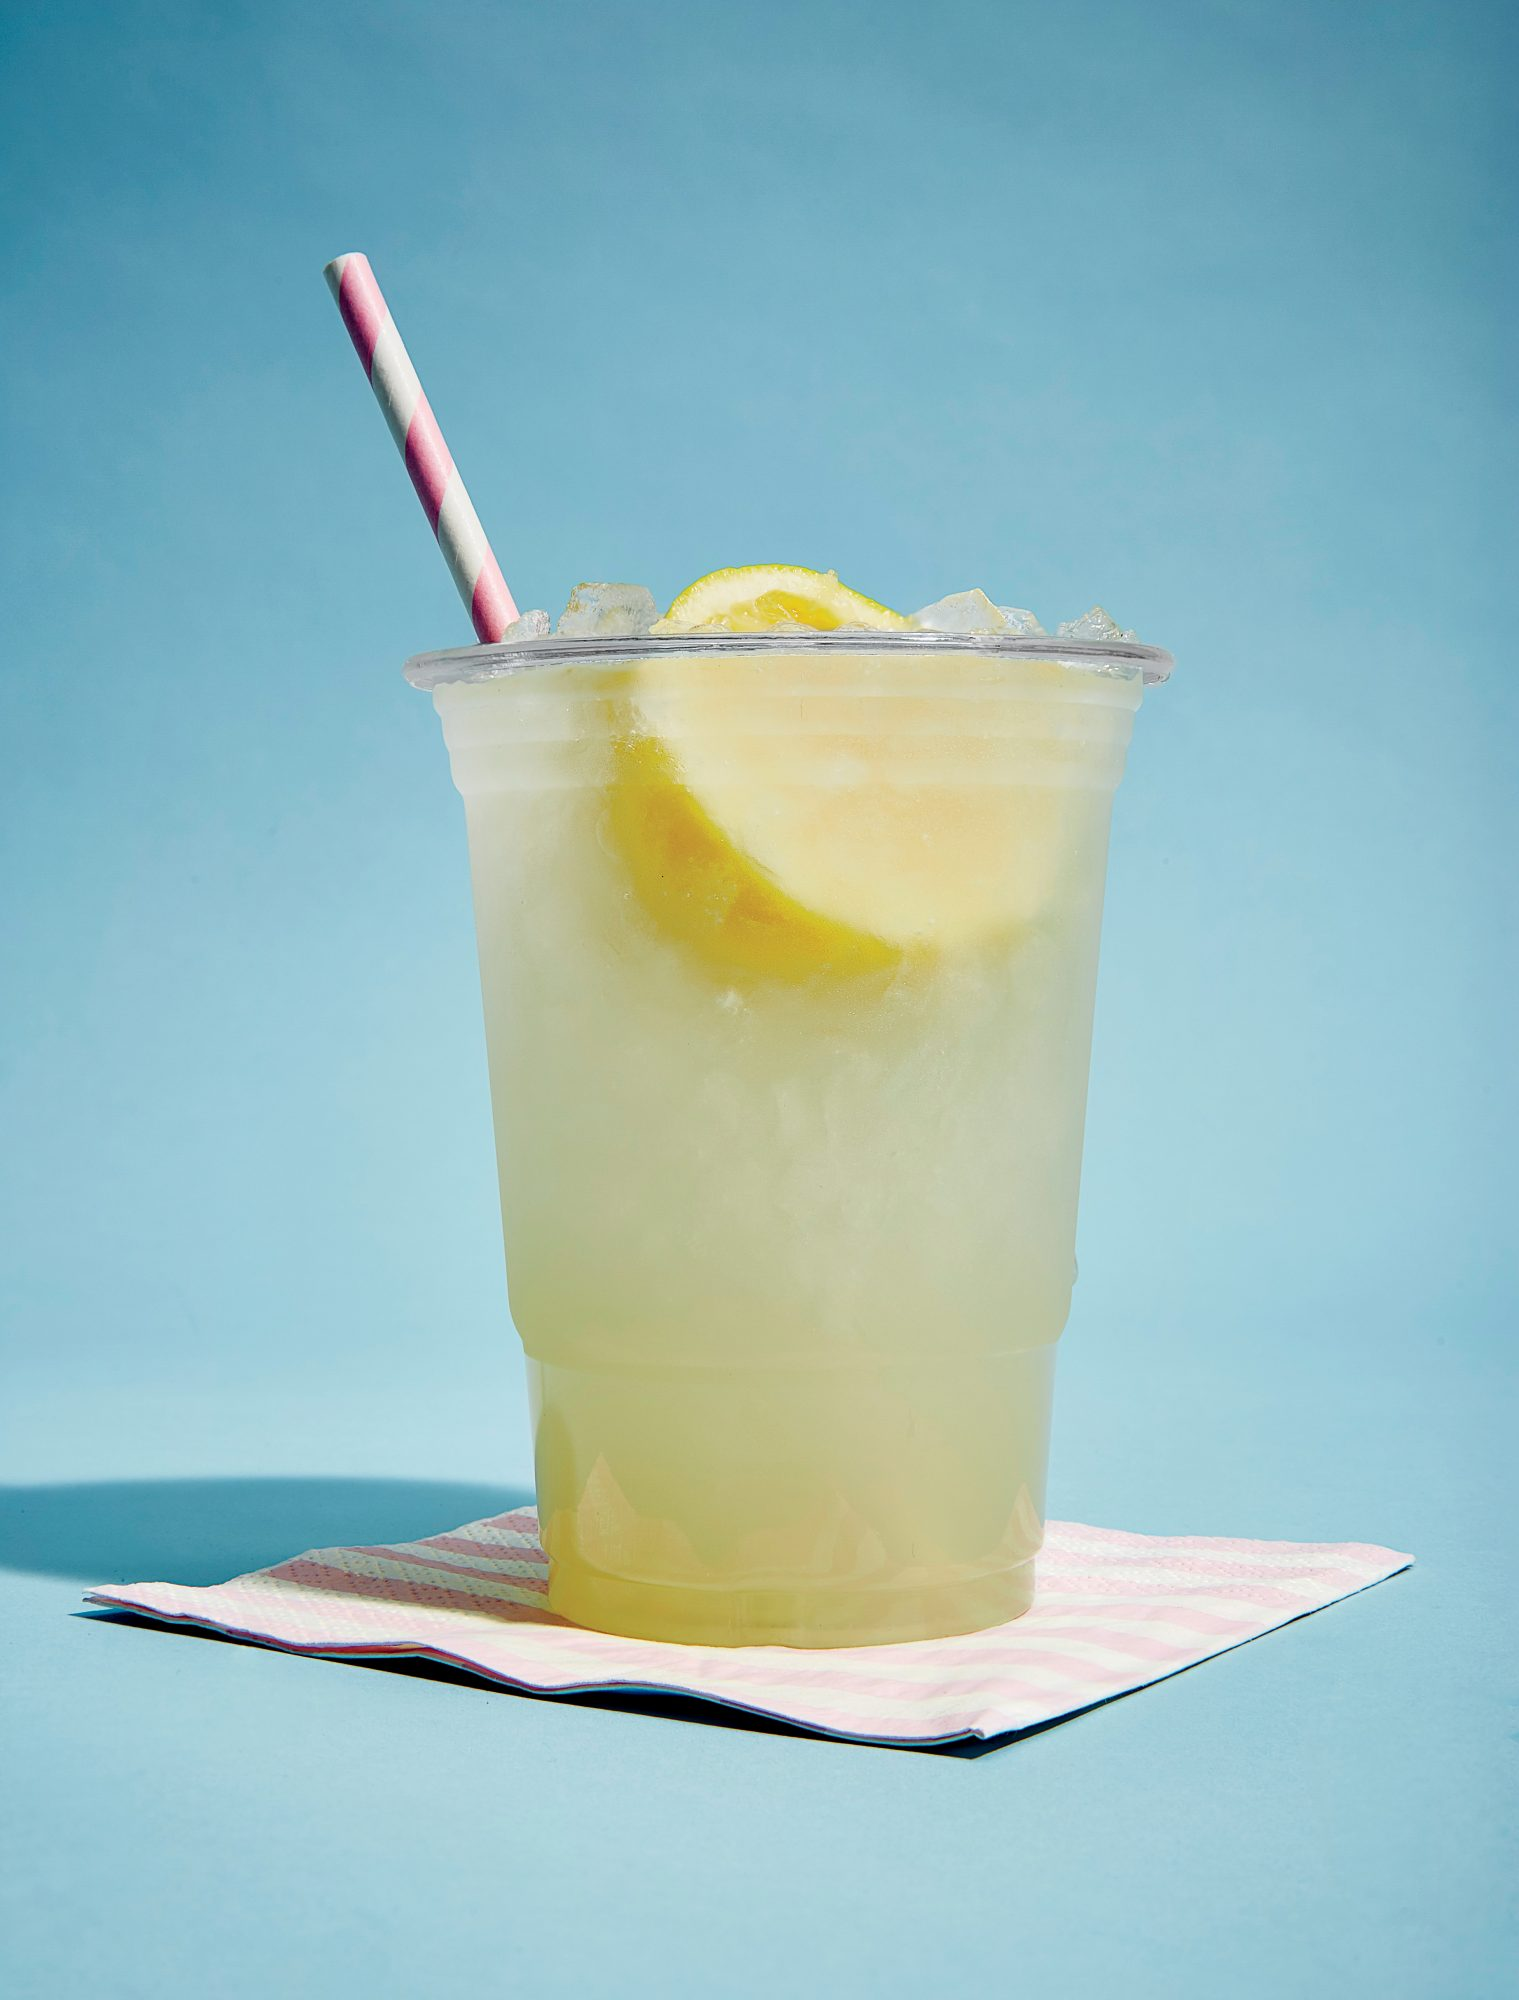 summer-sweet-lemonade-cl.jpg?itok=0twk_b